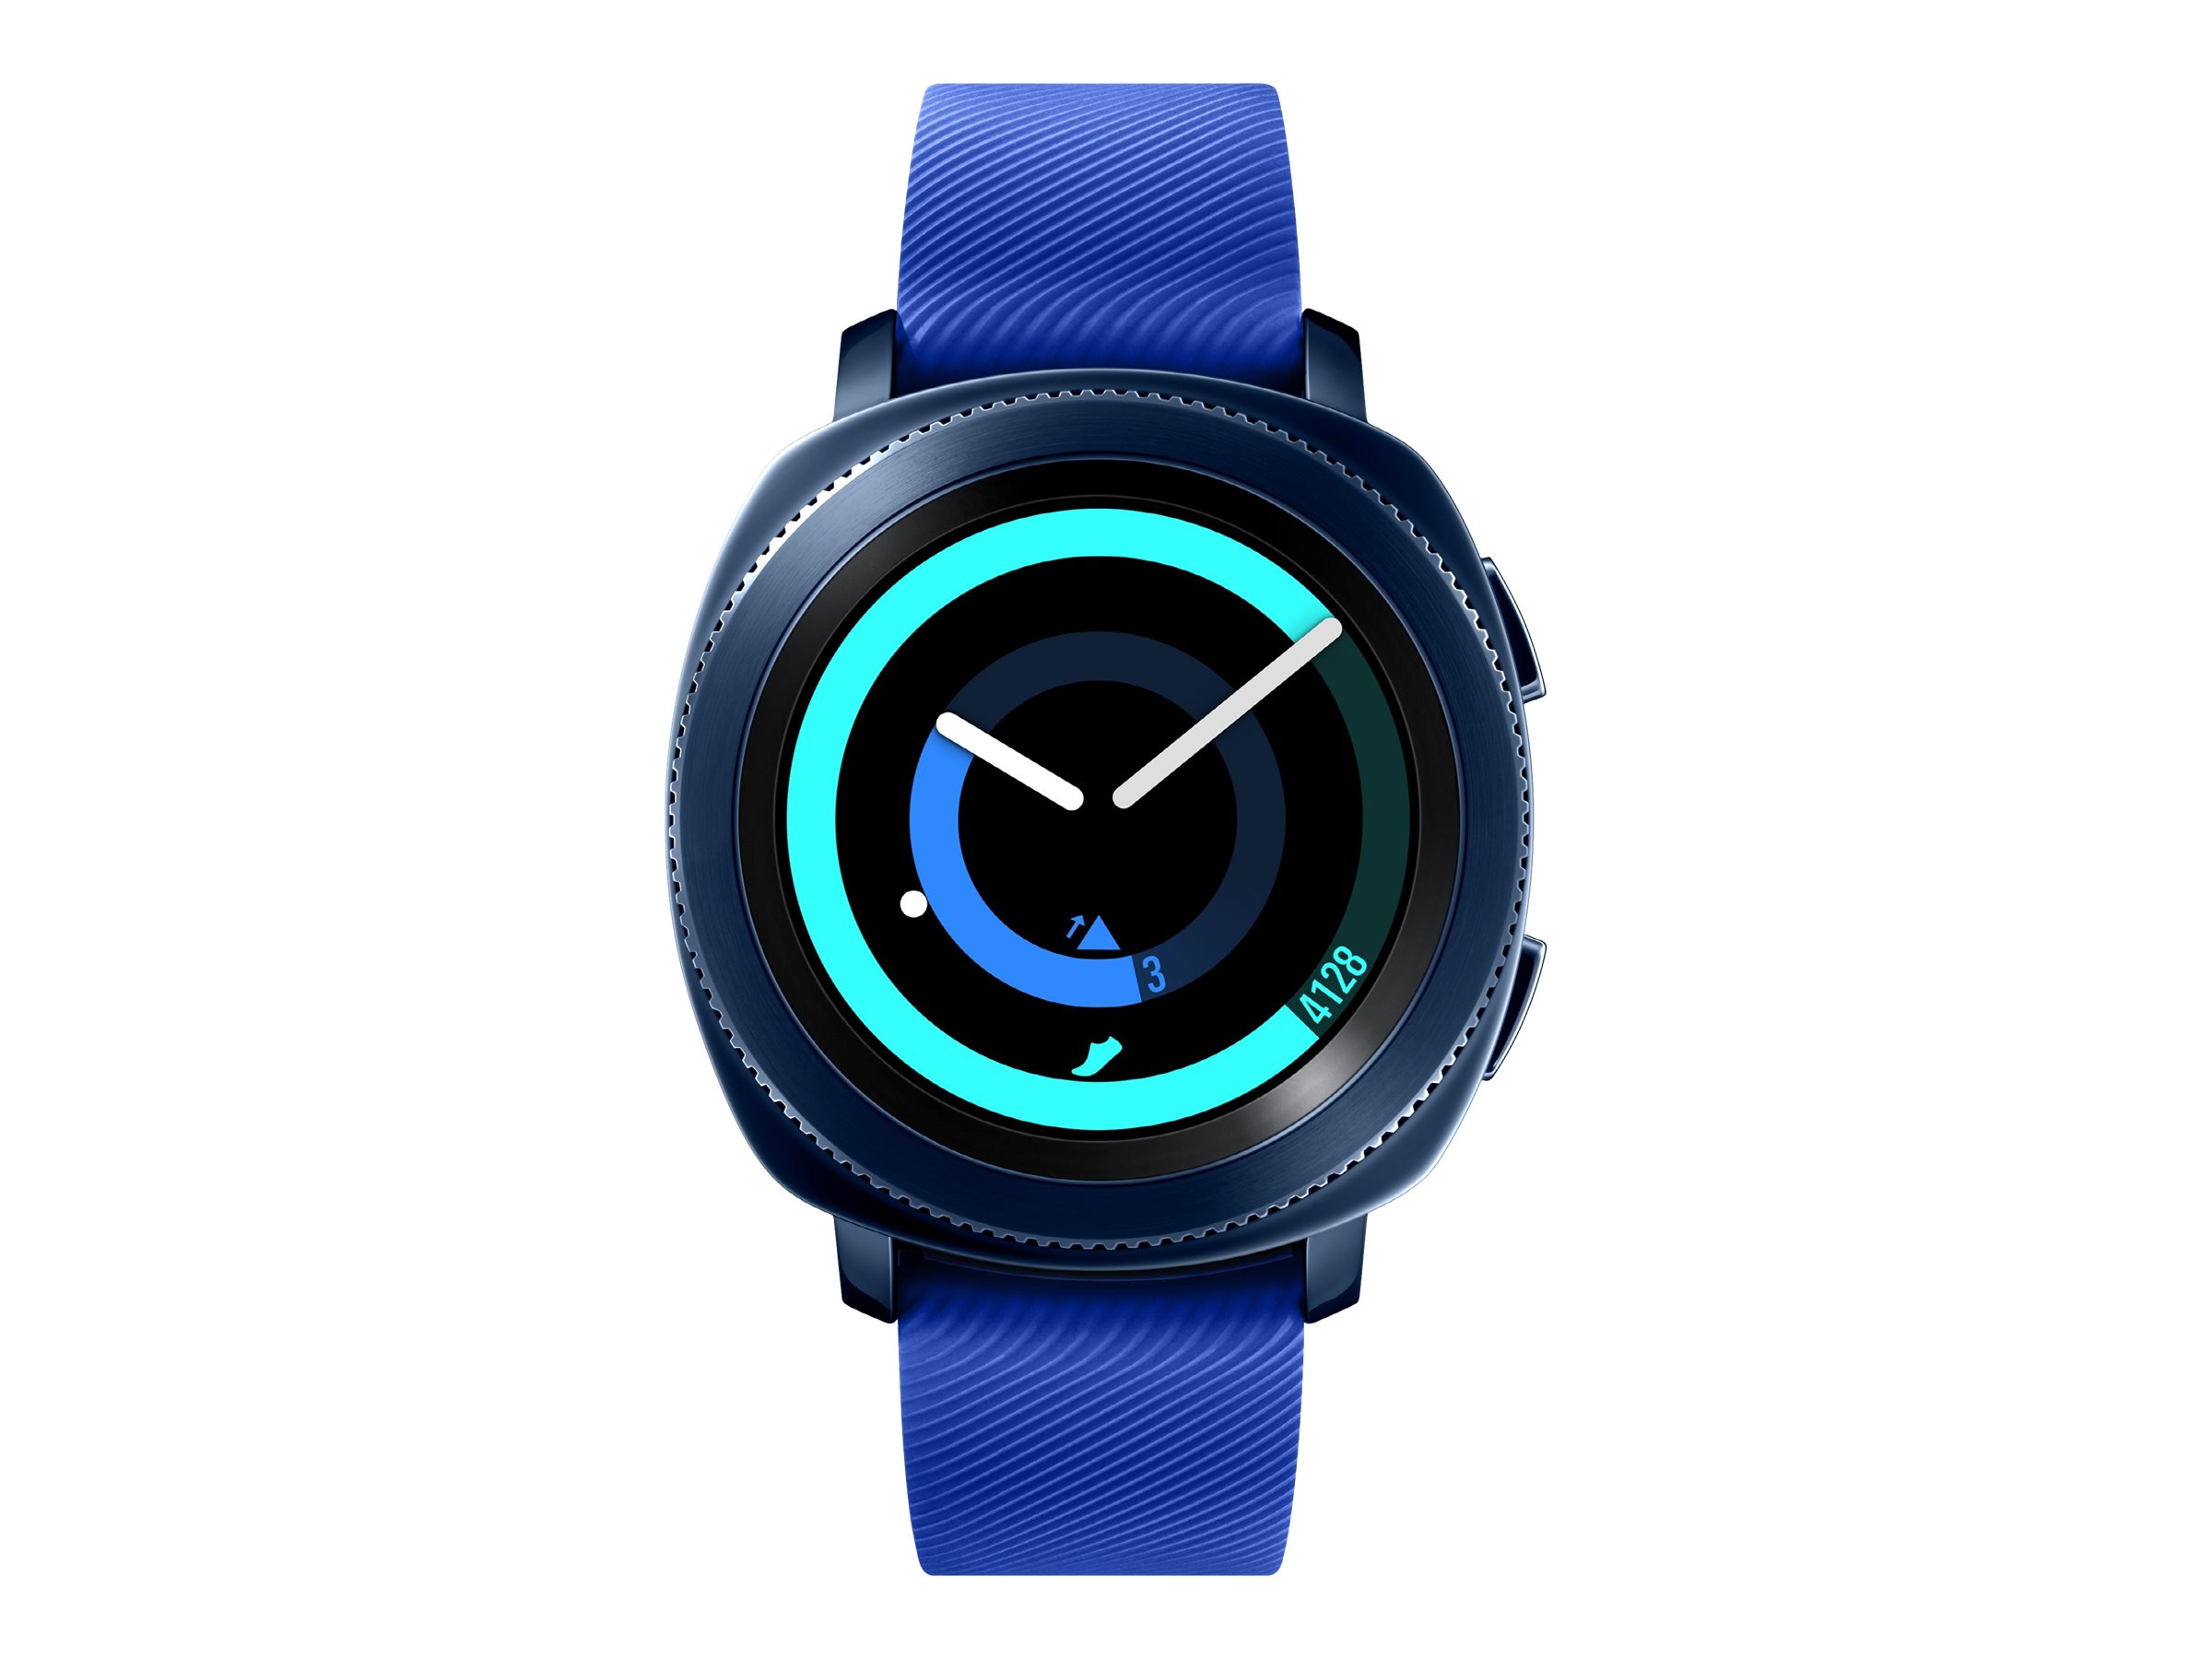 Image for Samsung Gear Sport Sm-R600 - Blue - Smart Watch With Strap - Blue - 4 Gb from Circuit City